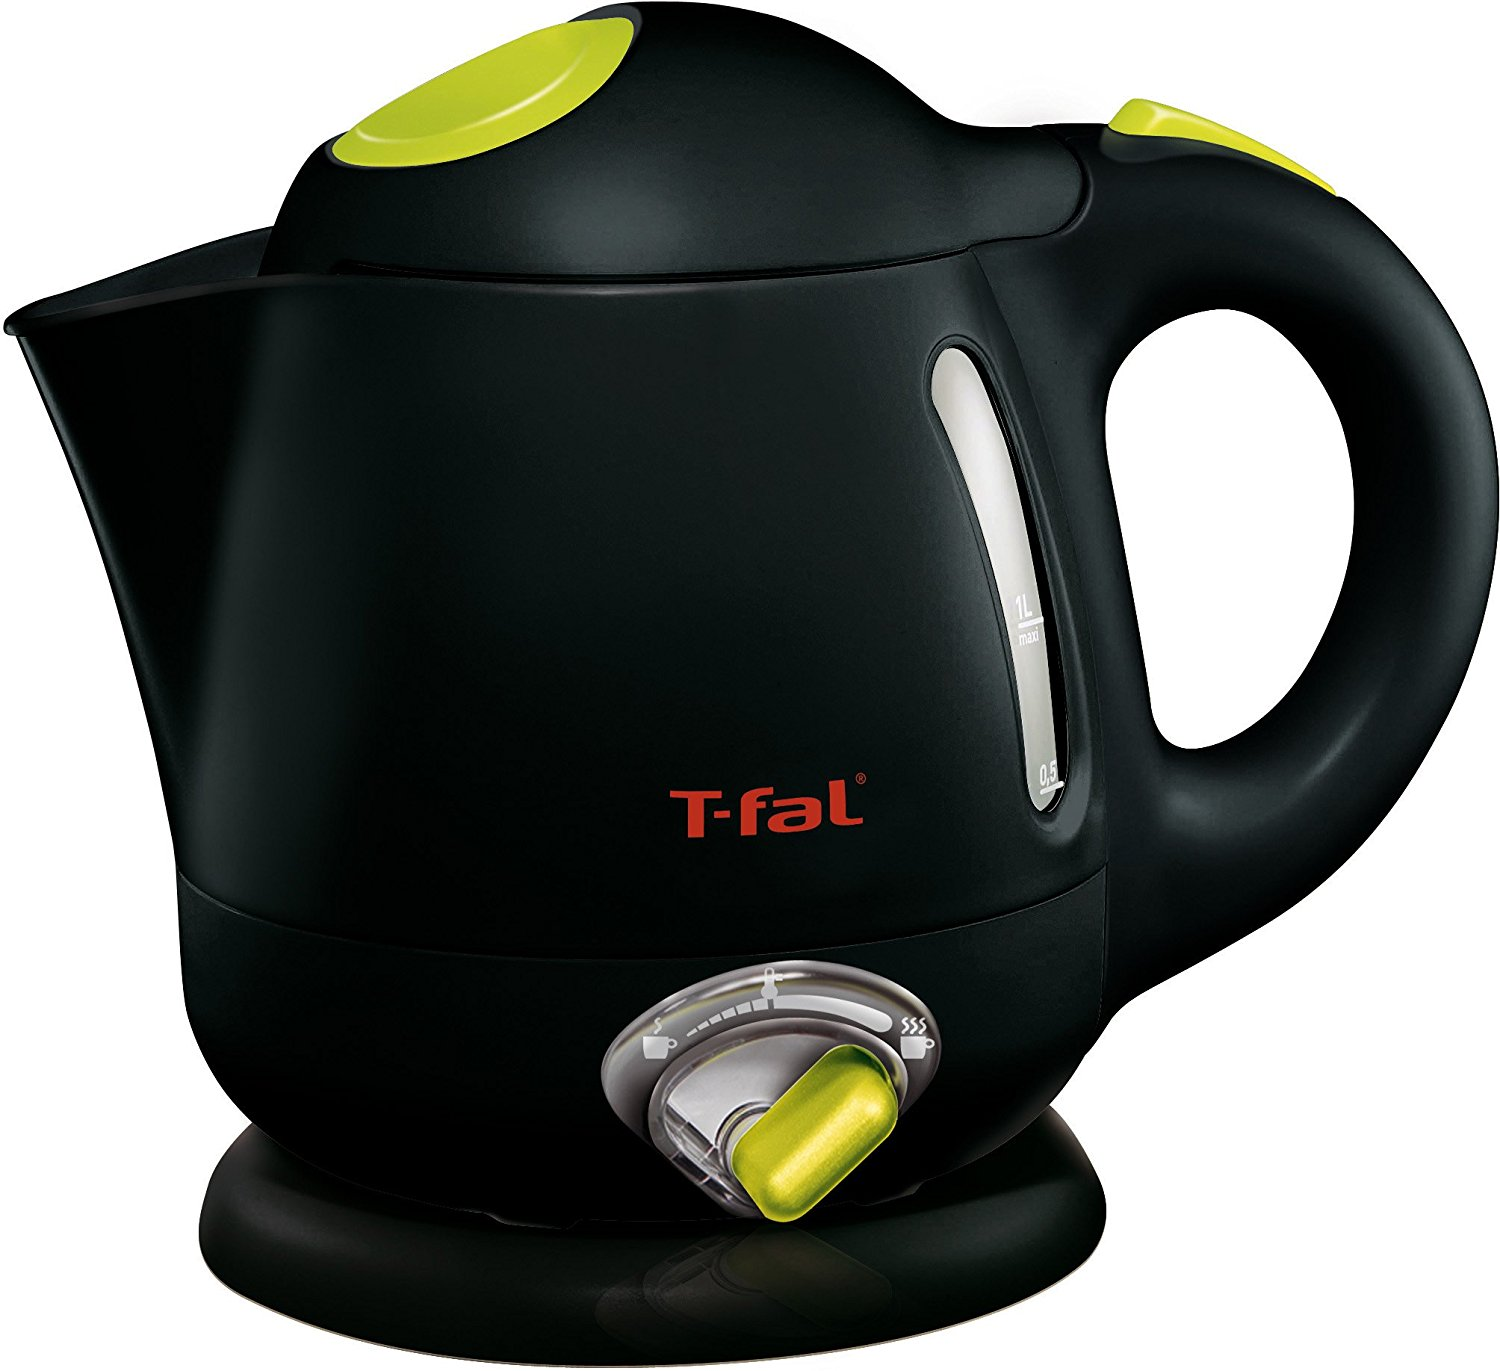 T-fal Balanced Living 1L Electric Kettle